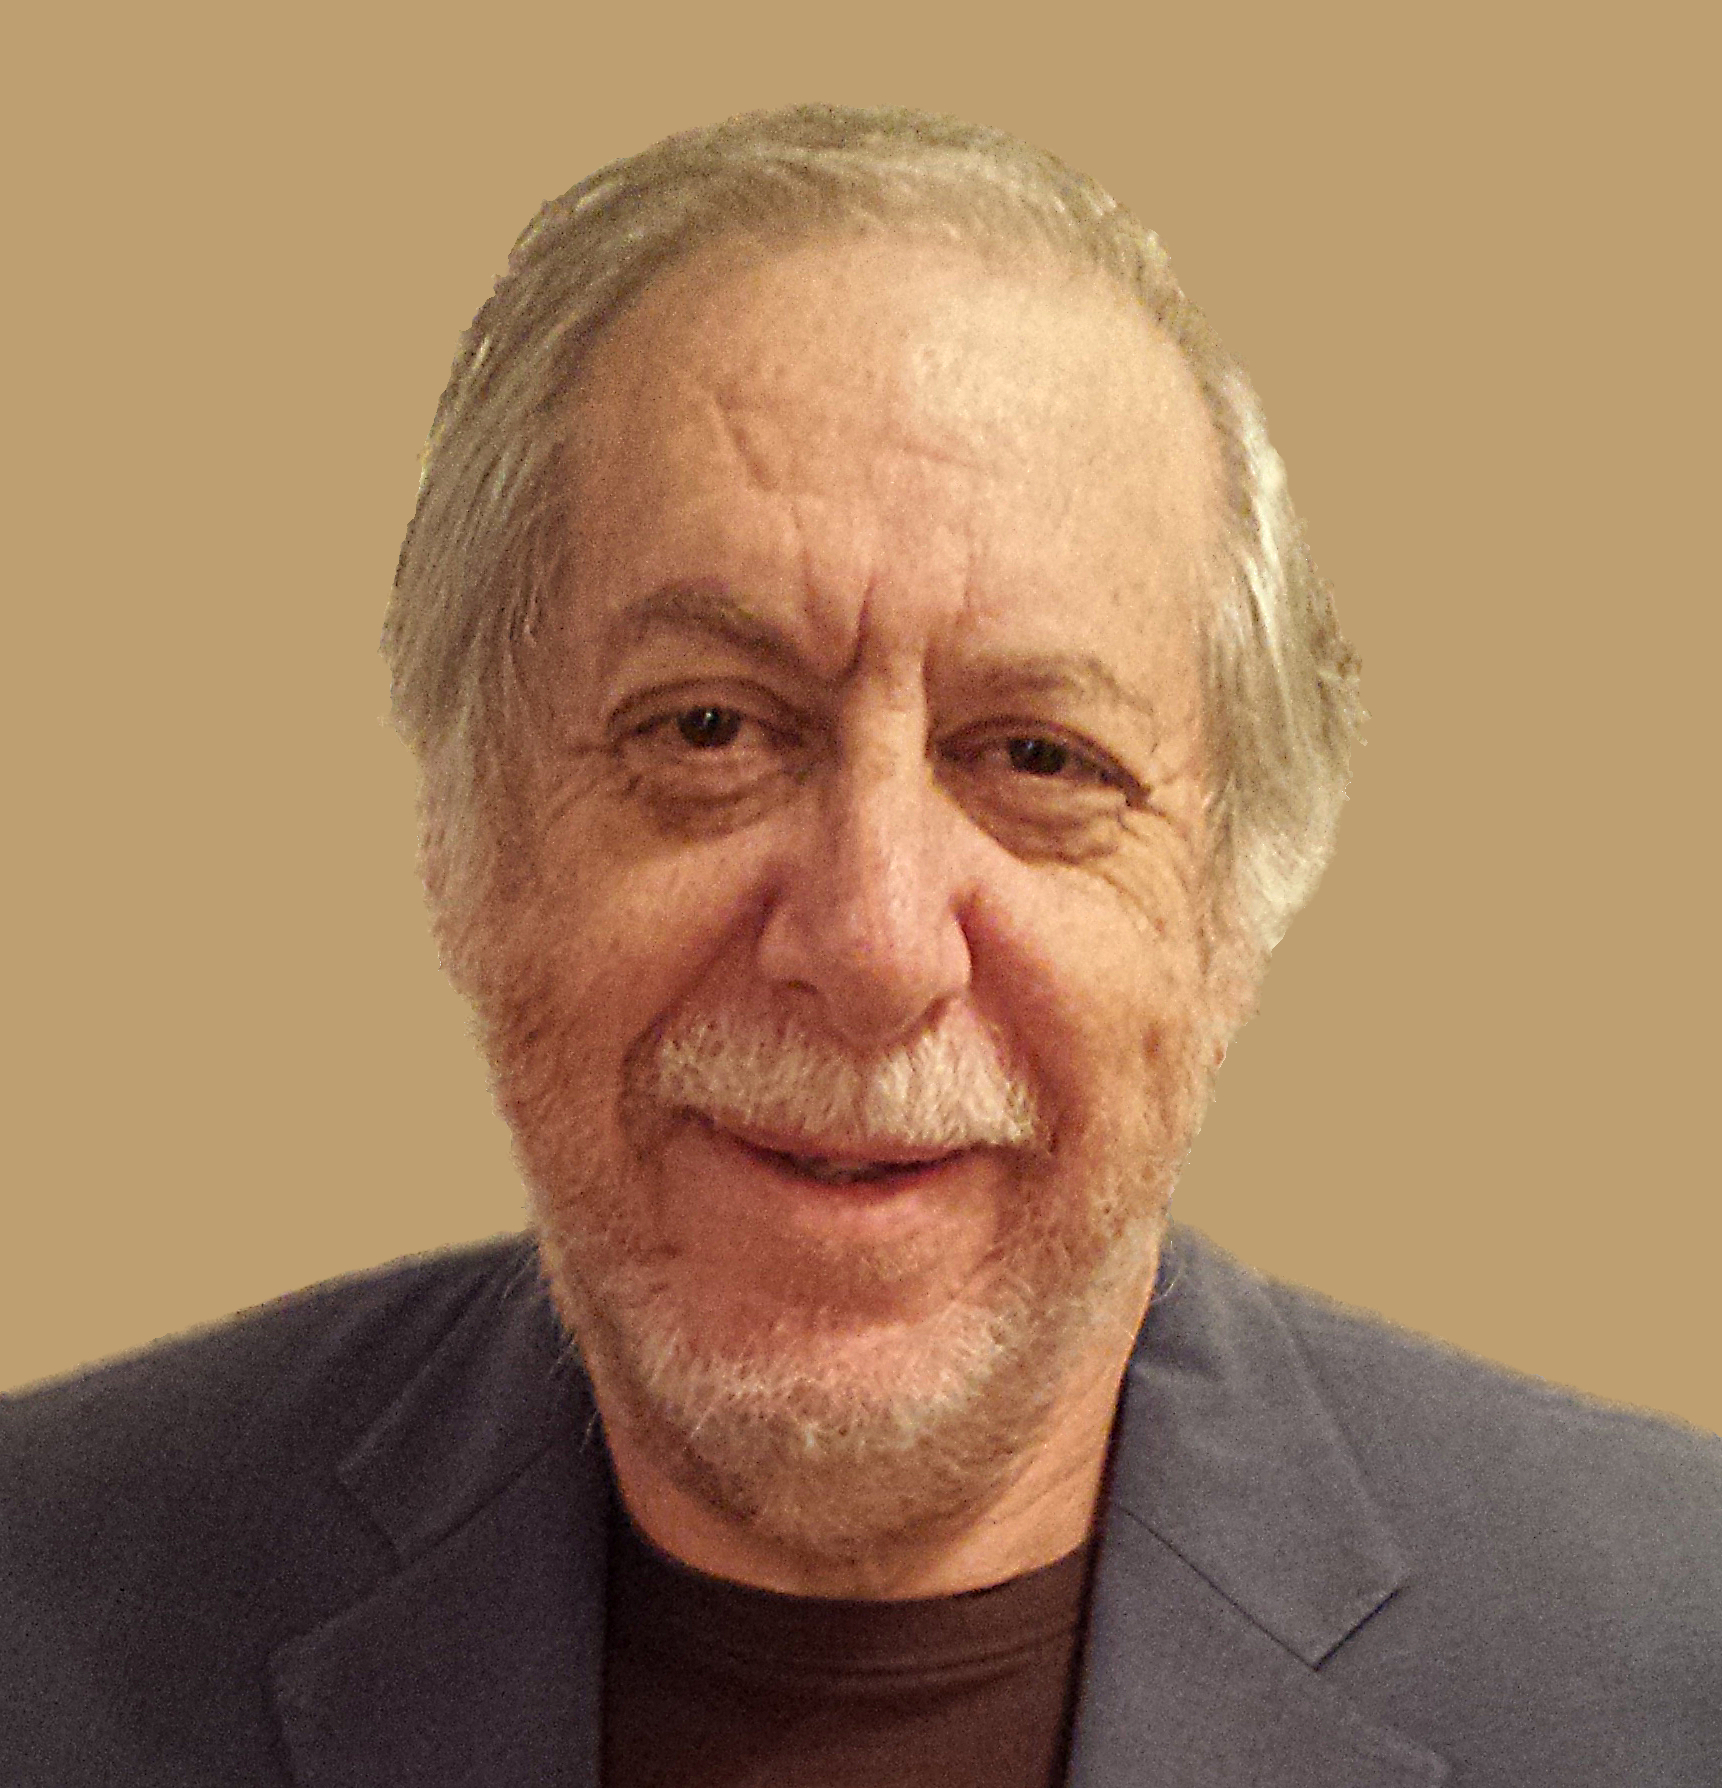 Avatar of Robert Moskowitz